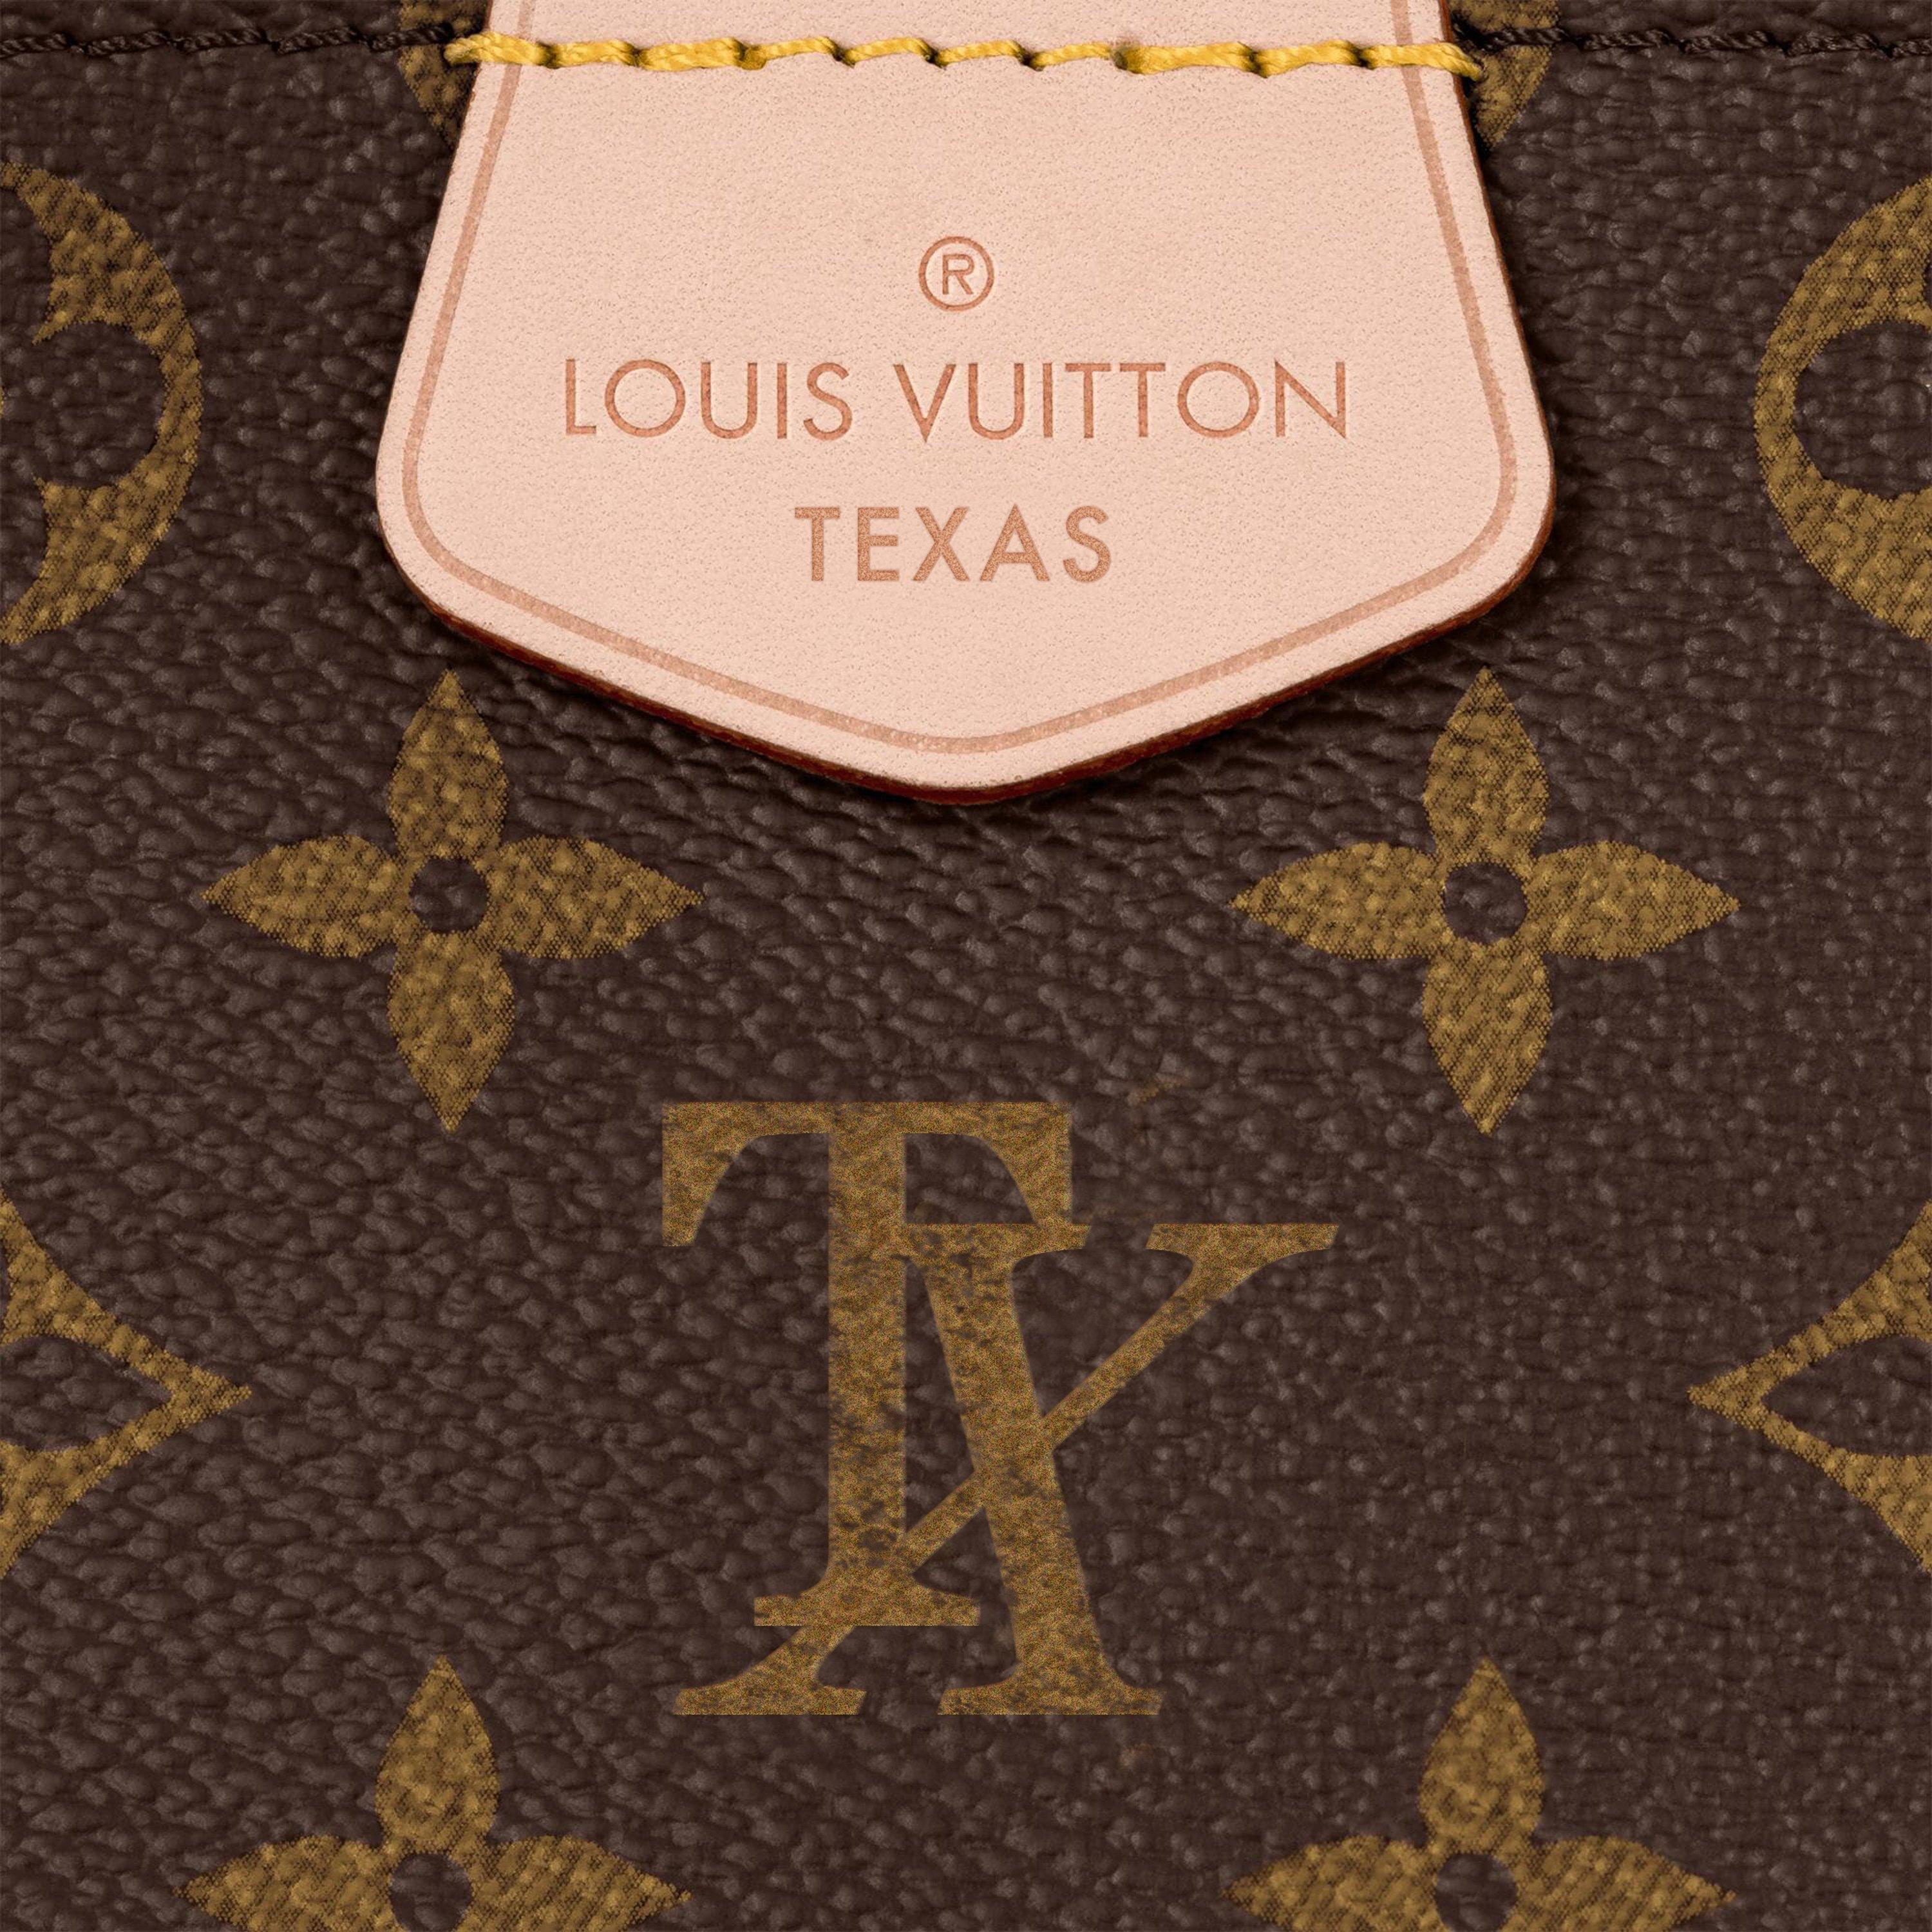 Will Texas-Made Louis Vuitton Bags Still Have That French-Heritage